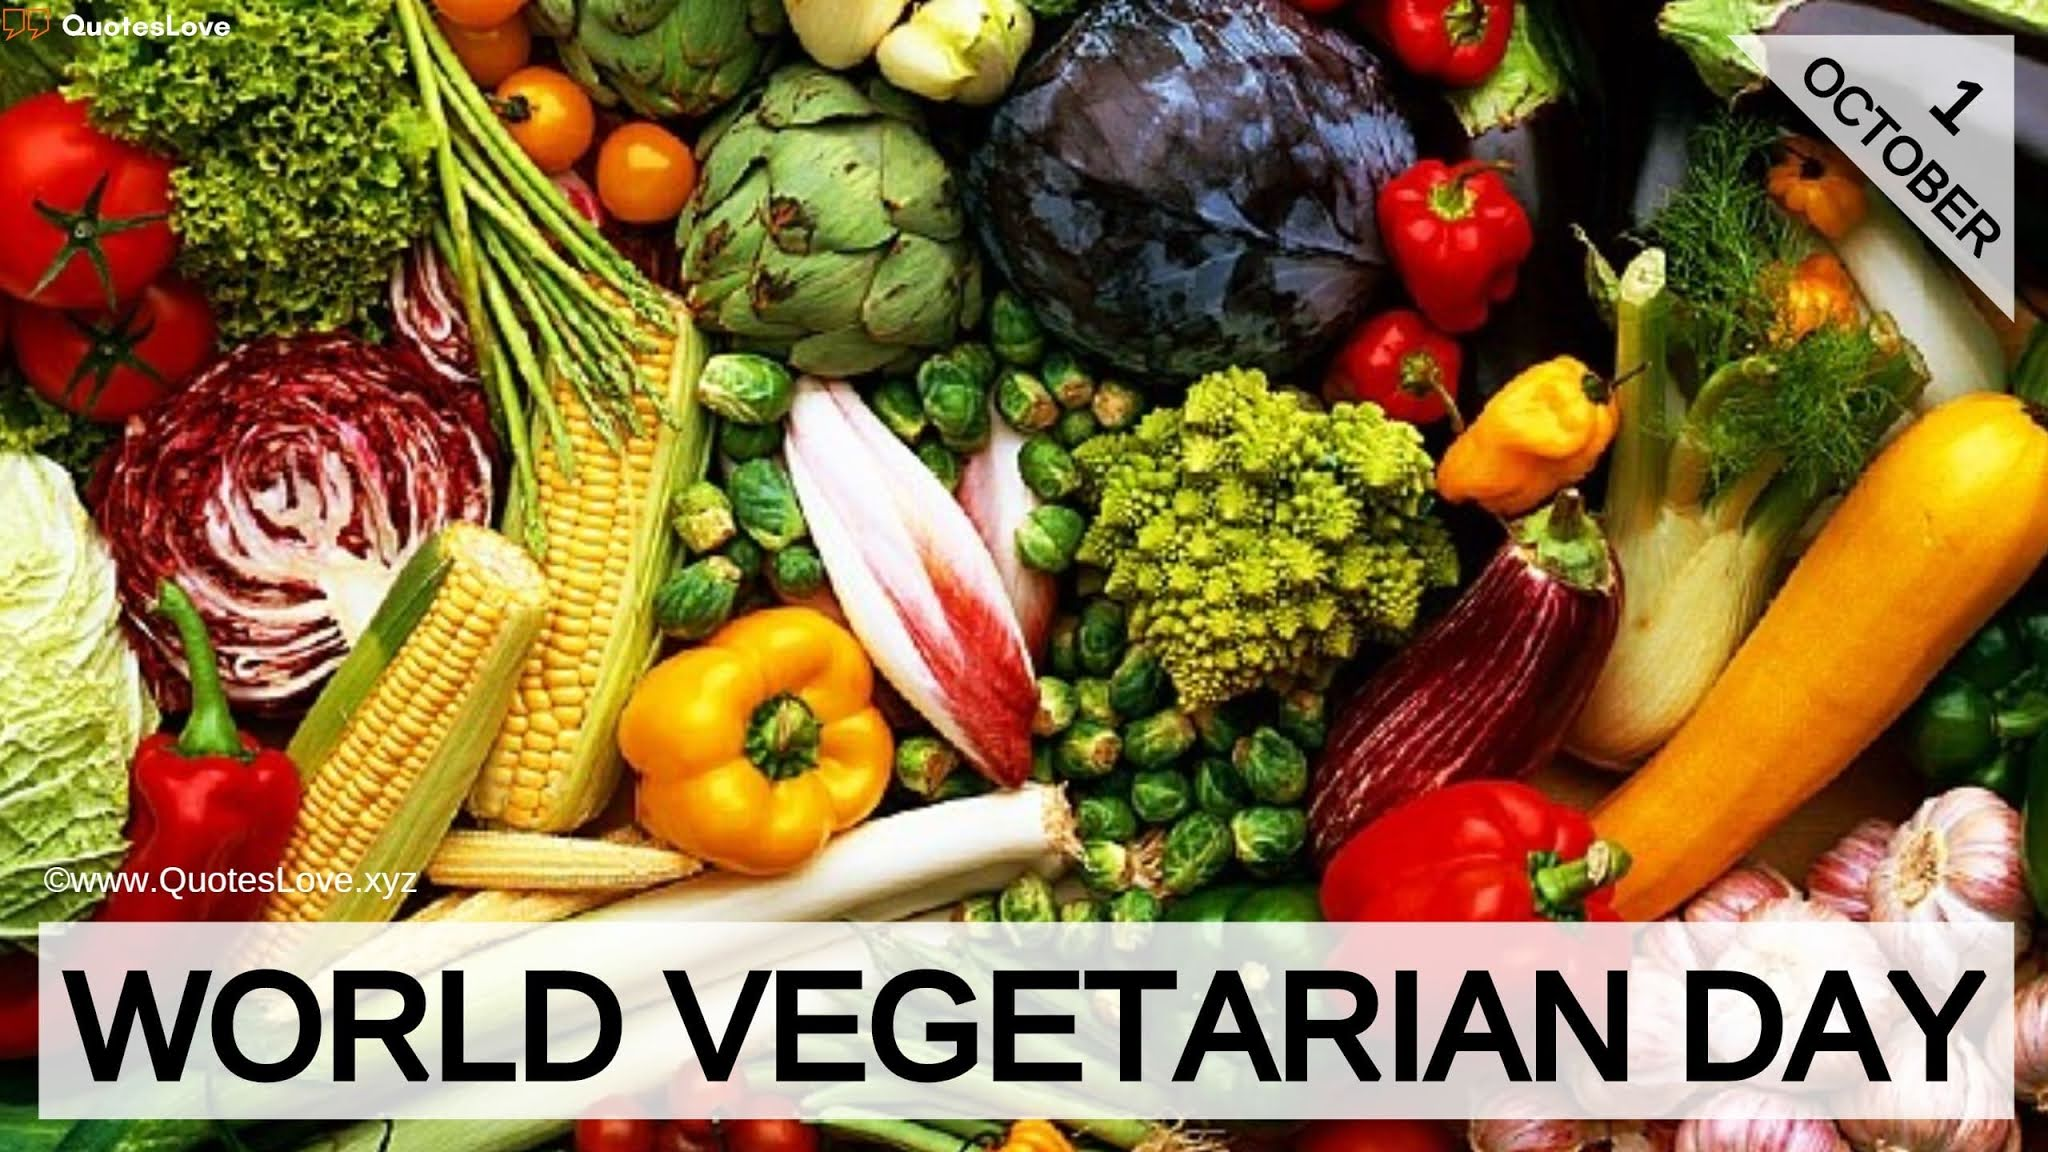 World Vegetarian Day Quotes, Sayings, Wishes, Images, Pictures, Poster, Photos